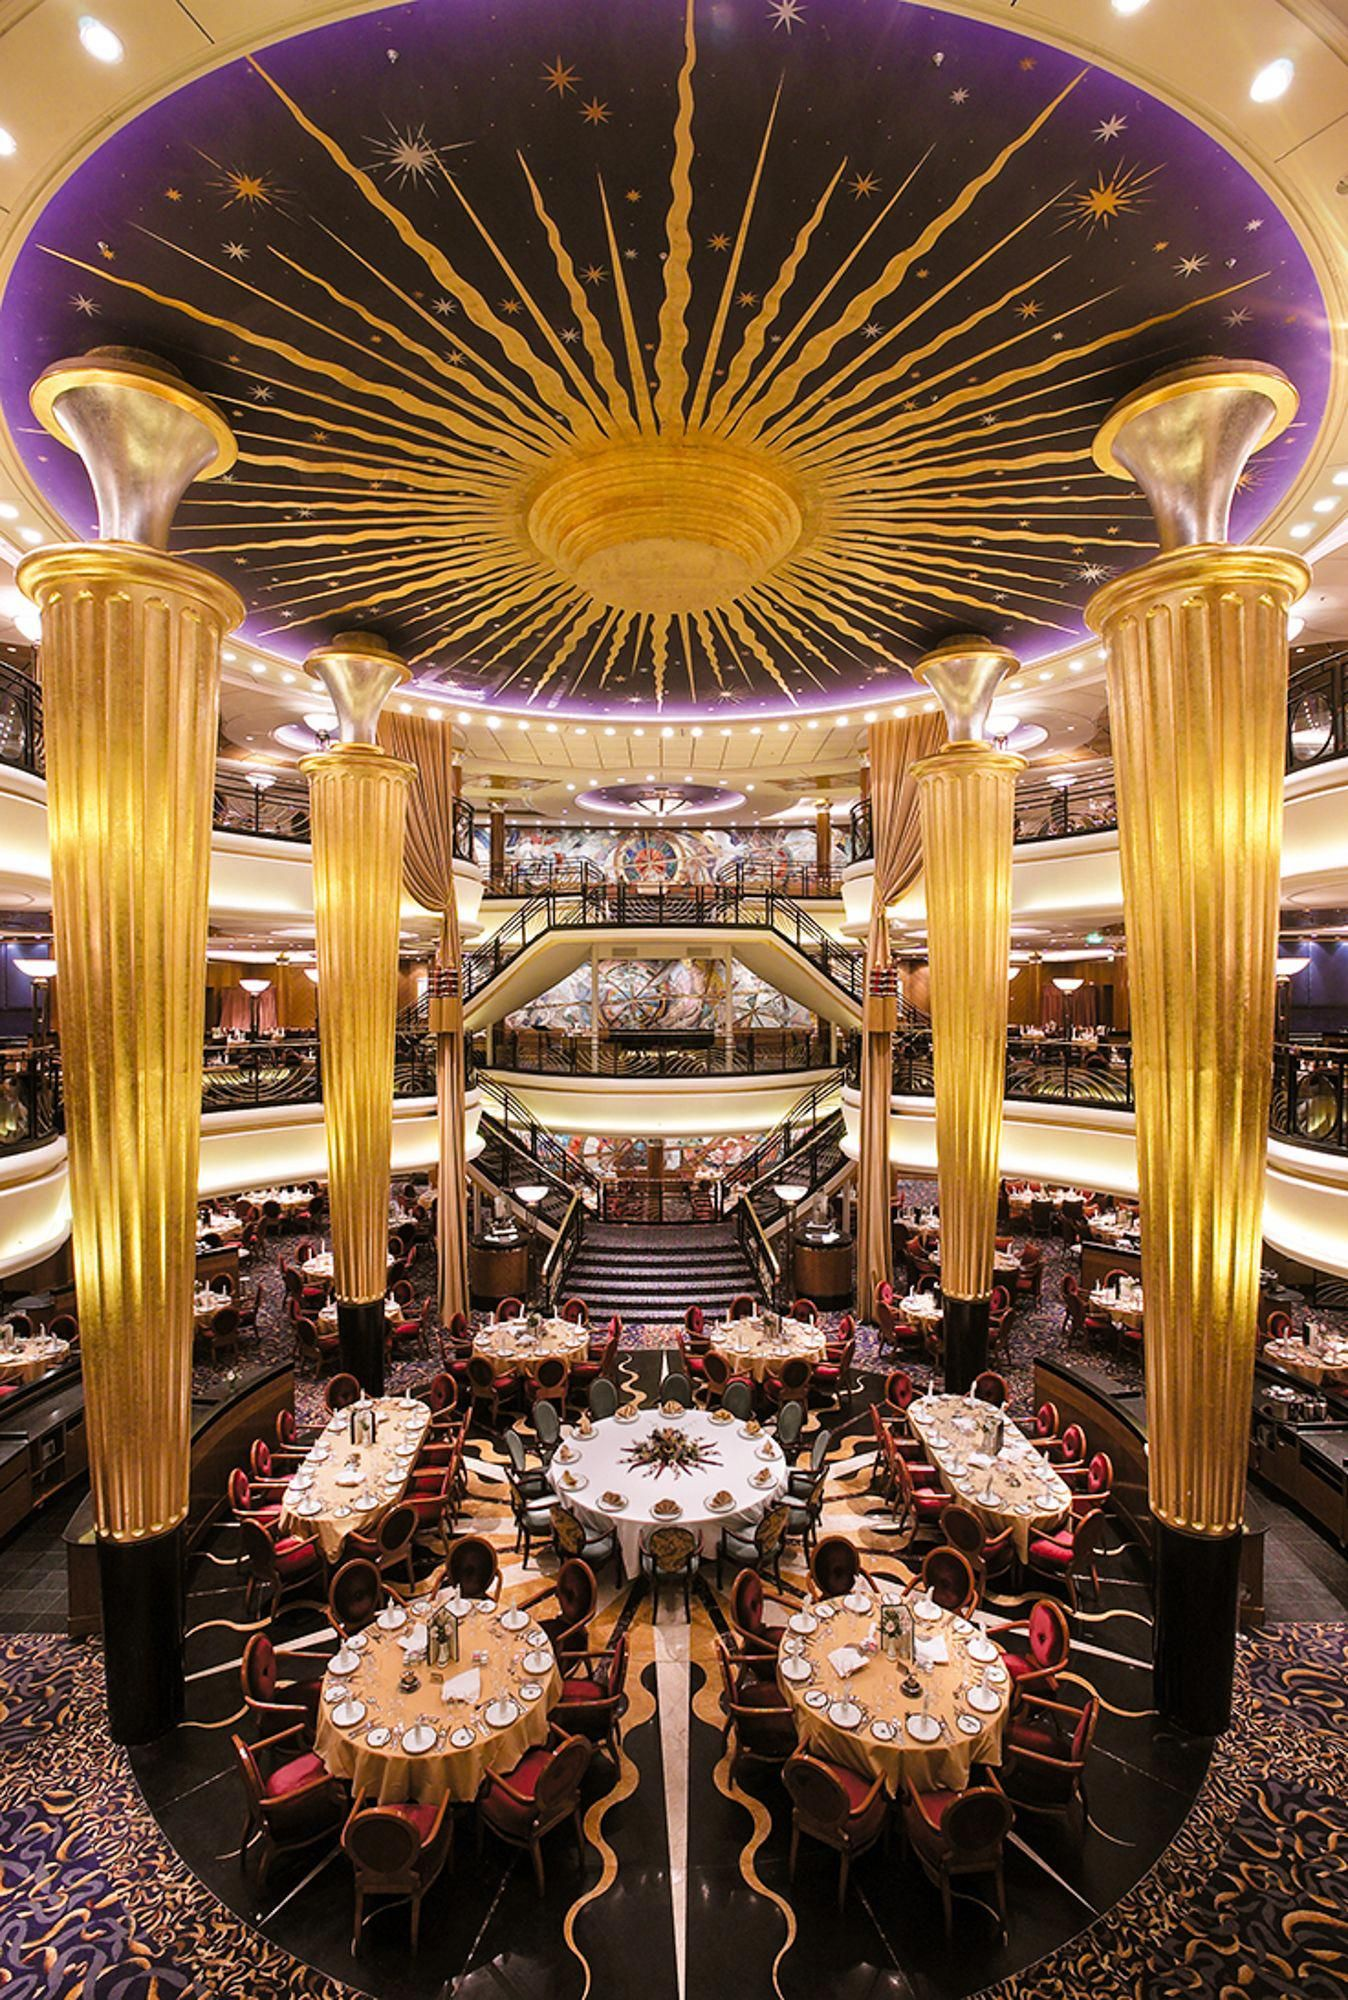 Dress Up For Formal Night To Dine In The Main Dining Room Of Voyager Of The Seas Royalcaribbeans Royal Caribbean Ships Royal Caribbean Royal Caribbean Cruise